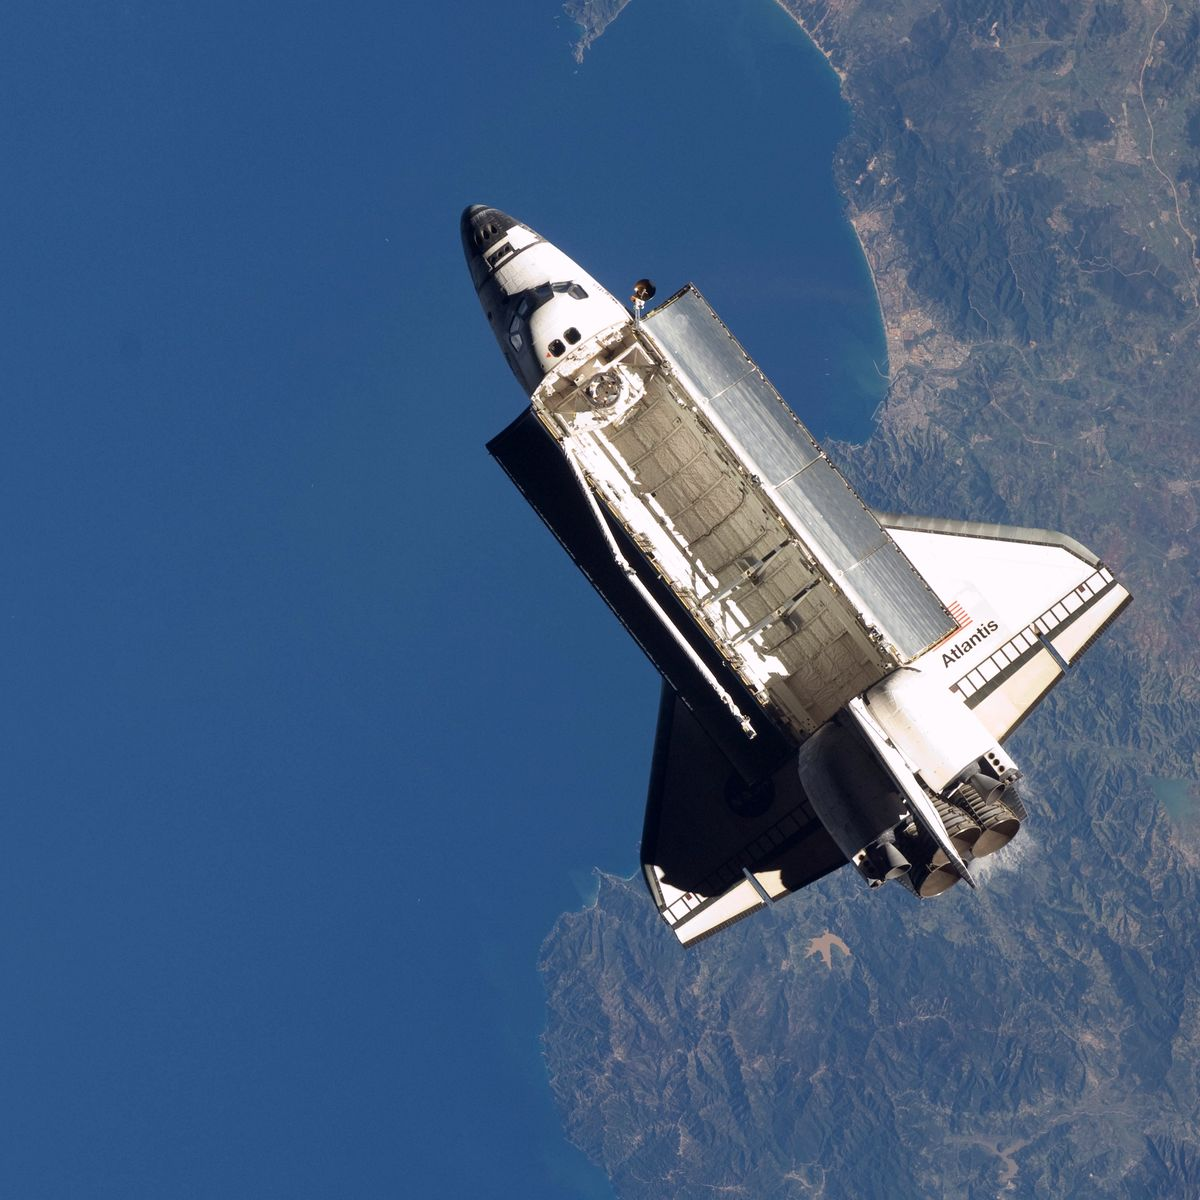 gpw-200911-nasa-iss021-e-032920-space-shuttle-atlantis-sts-129-over-the-mediterranean-sea-20091125-large.jpg